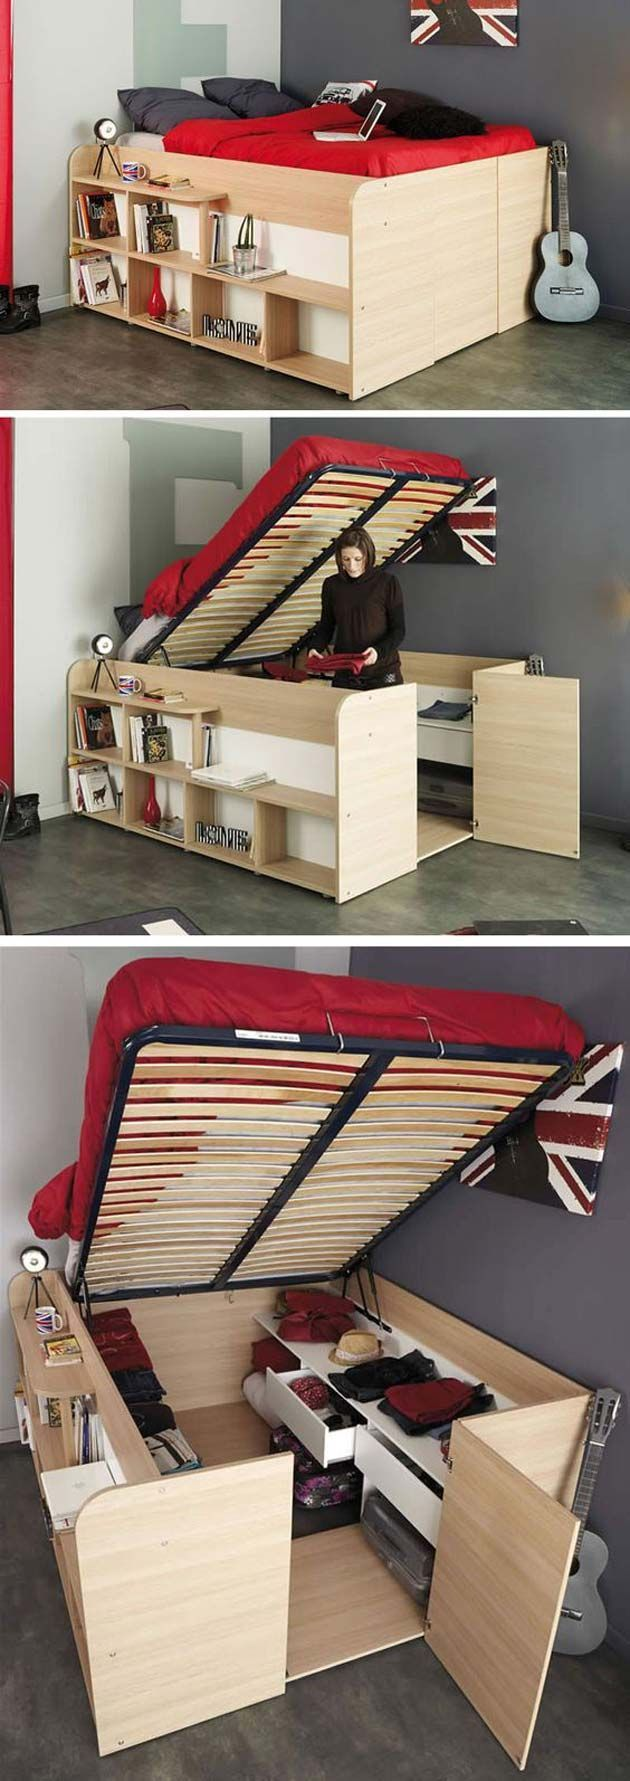 Photo of 31 ideas for small spaces to maximize your small bedroom – # for …